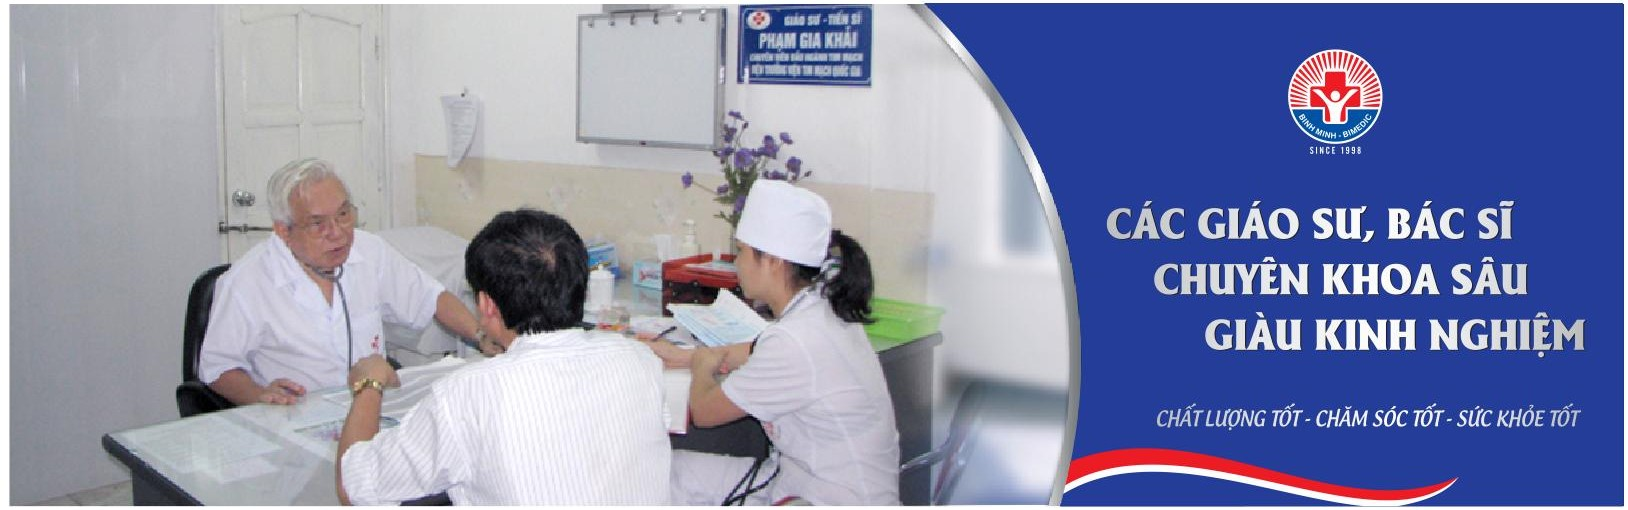 banner dịch vụ